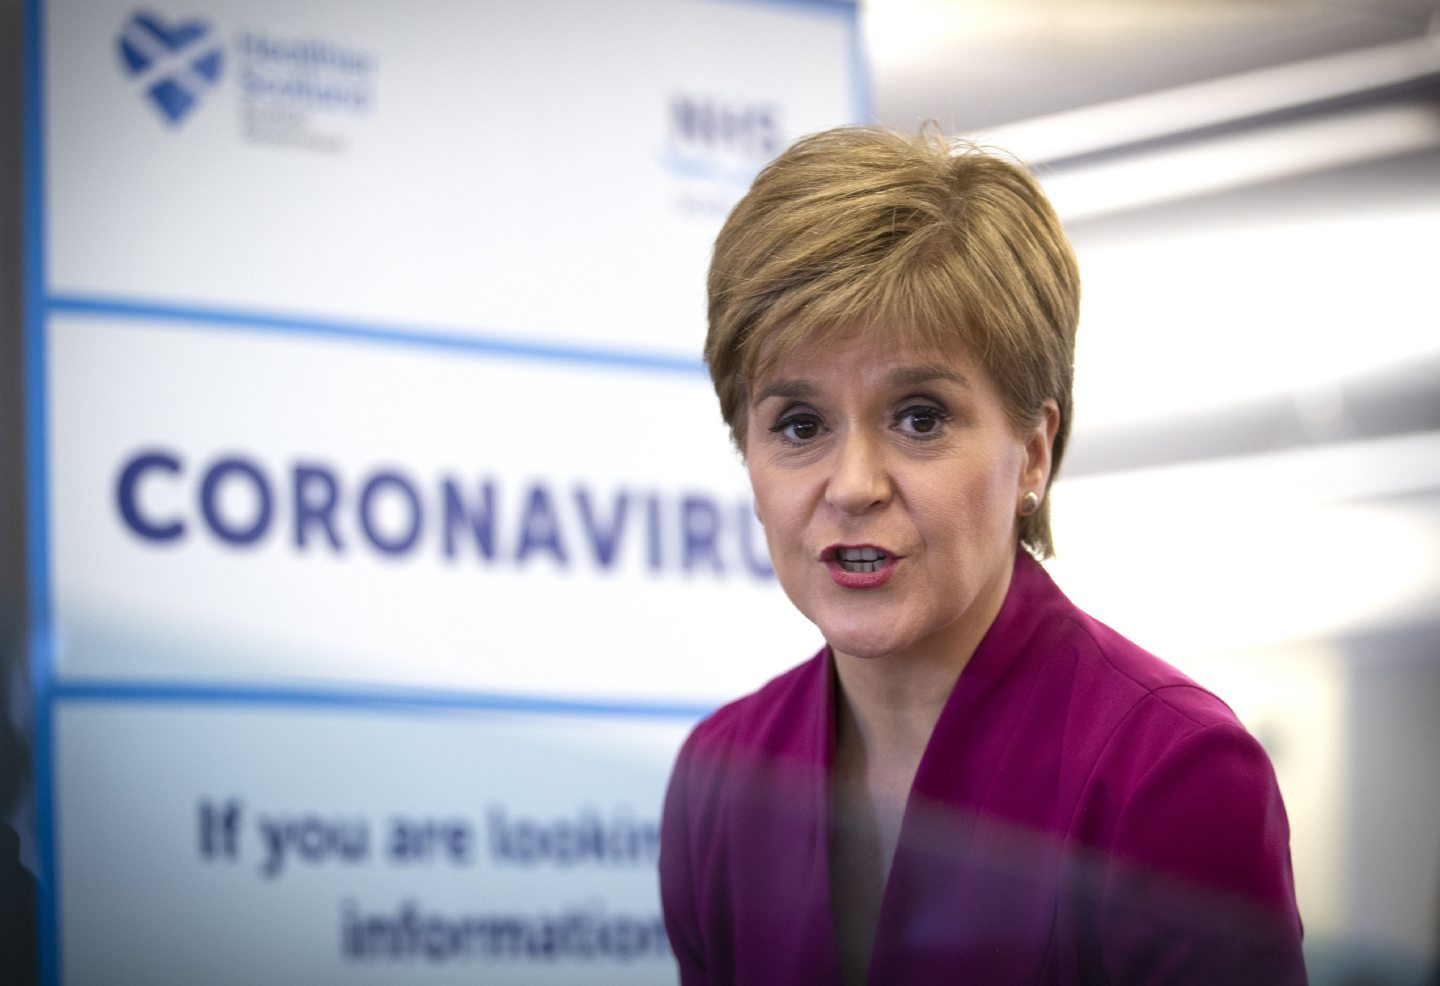 With Holyrood closed Nicola Sturgeon took part in a virtual First Minister's Questions.